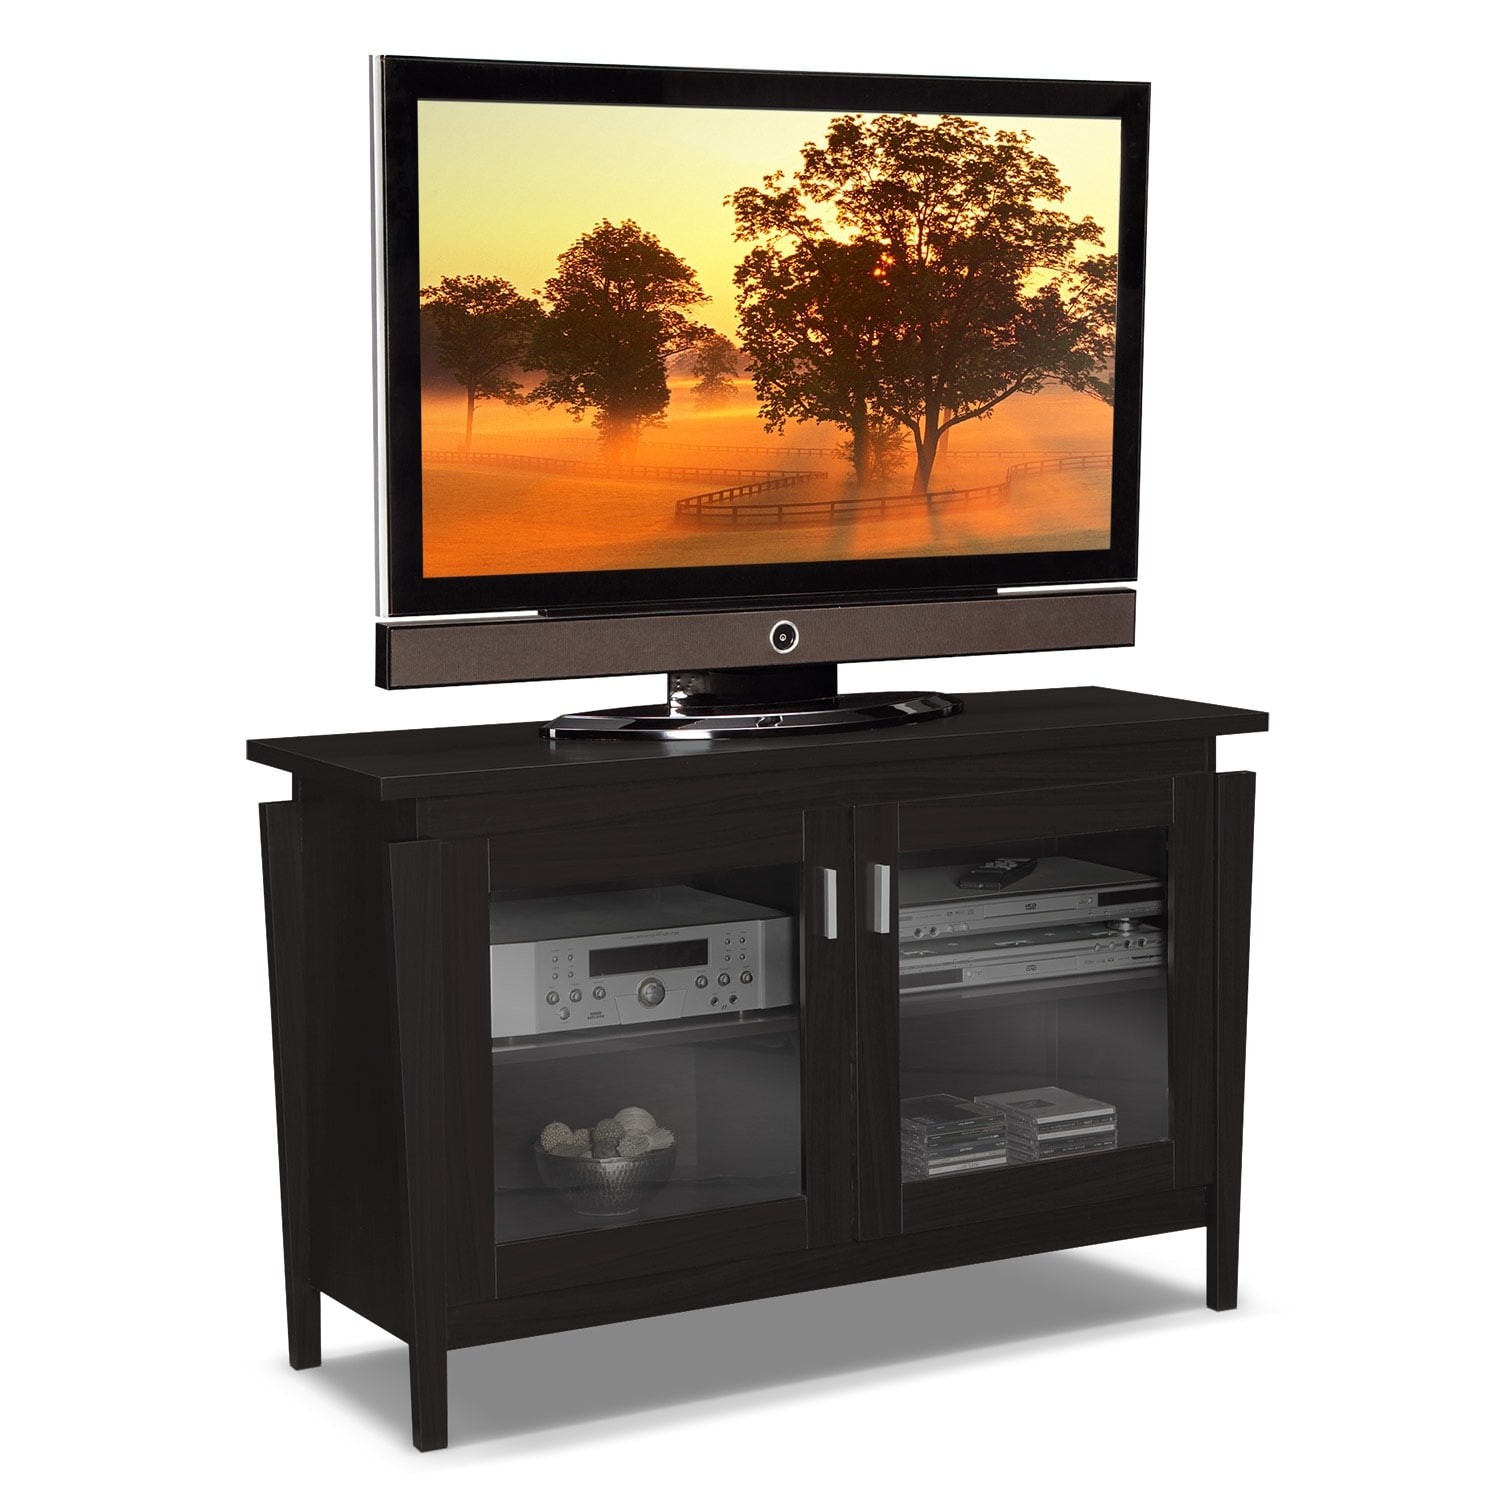 "[Saber 48"" TV Stand]"